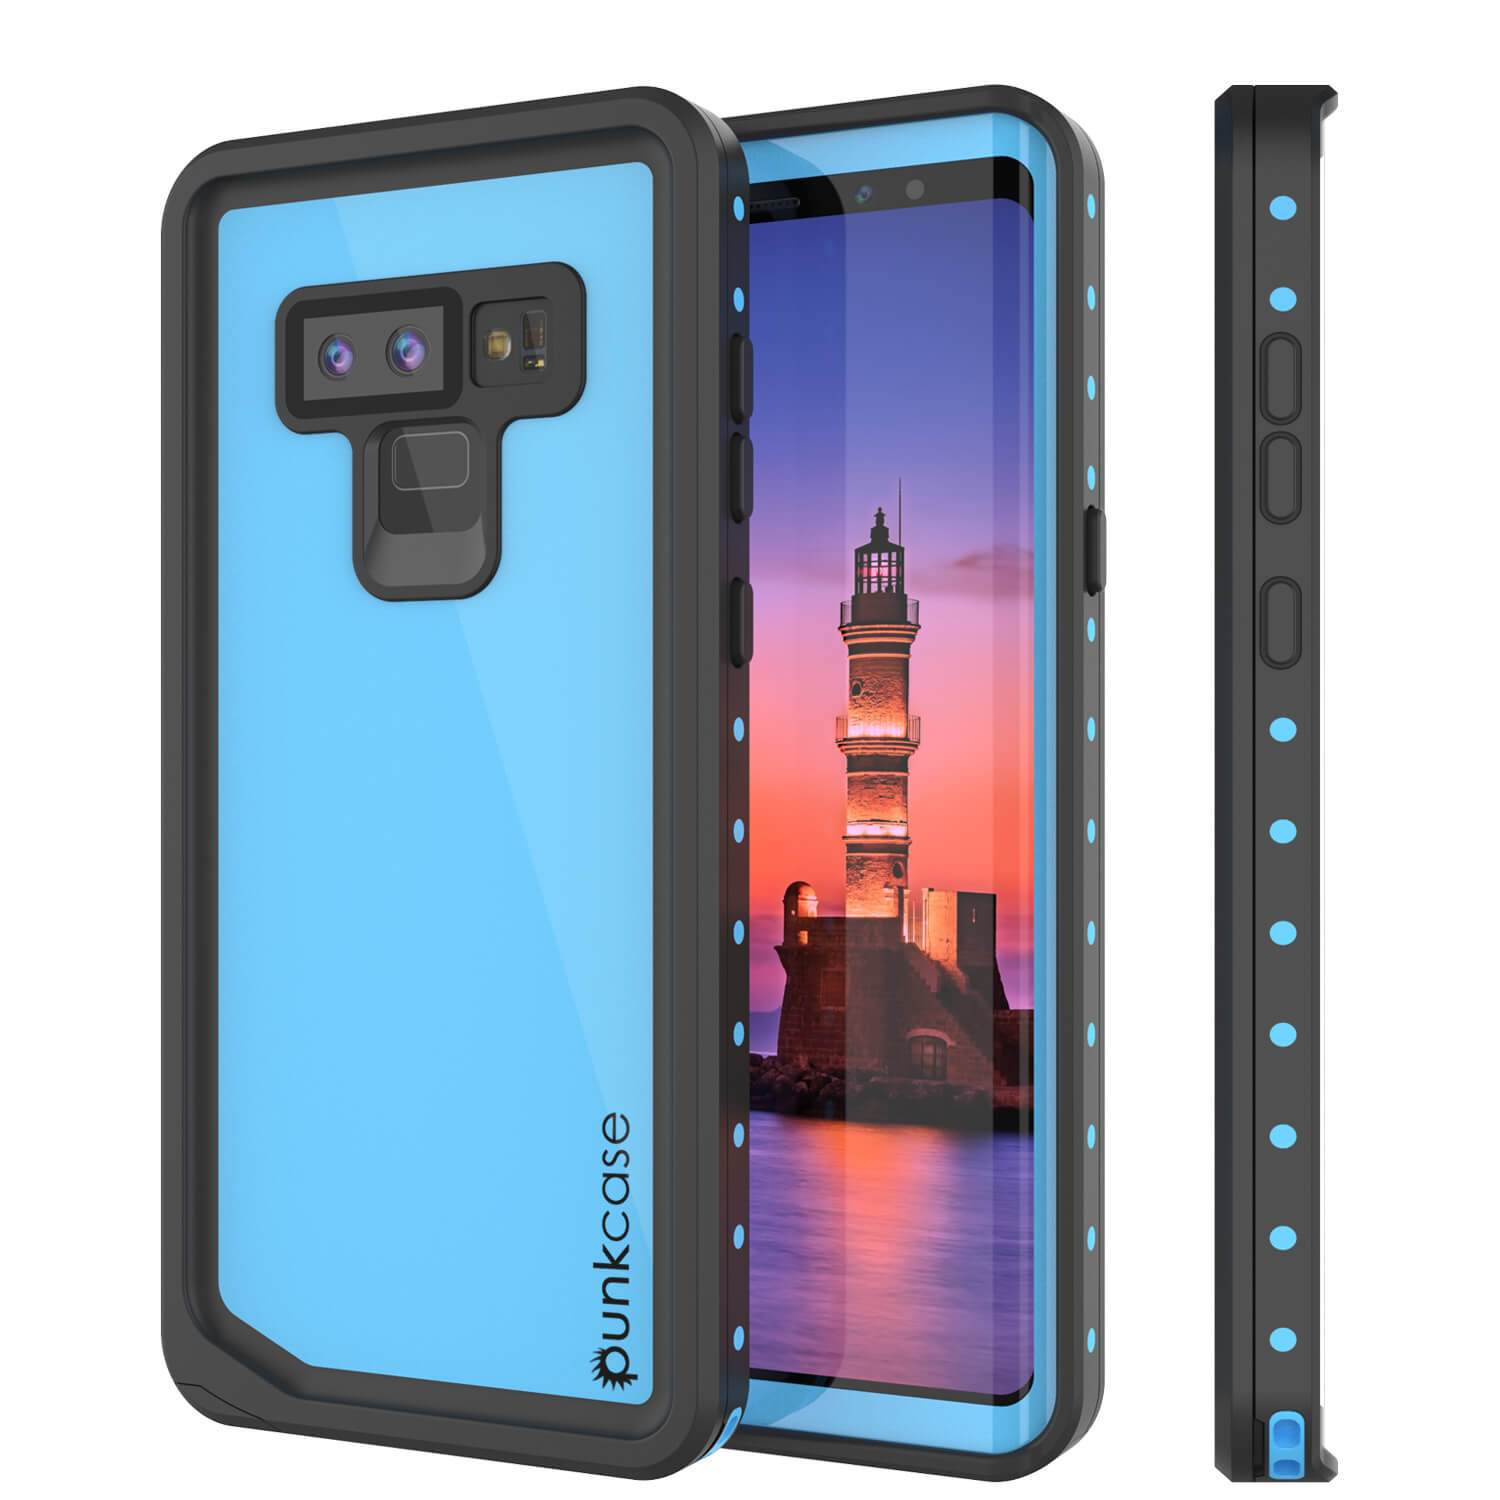 Galaxy Note 9 Waterproof Case PunkCase StudStar Light Blue Thin 6.6ft Underwater ShockProof